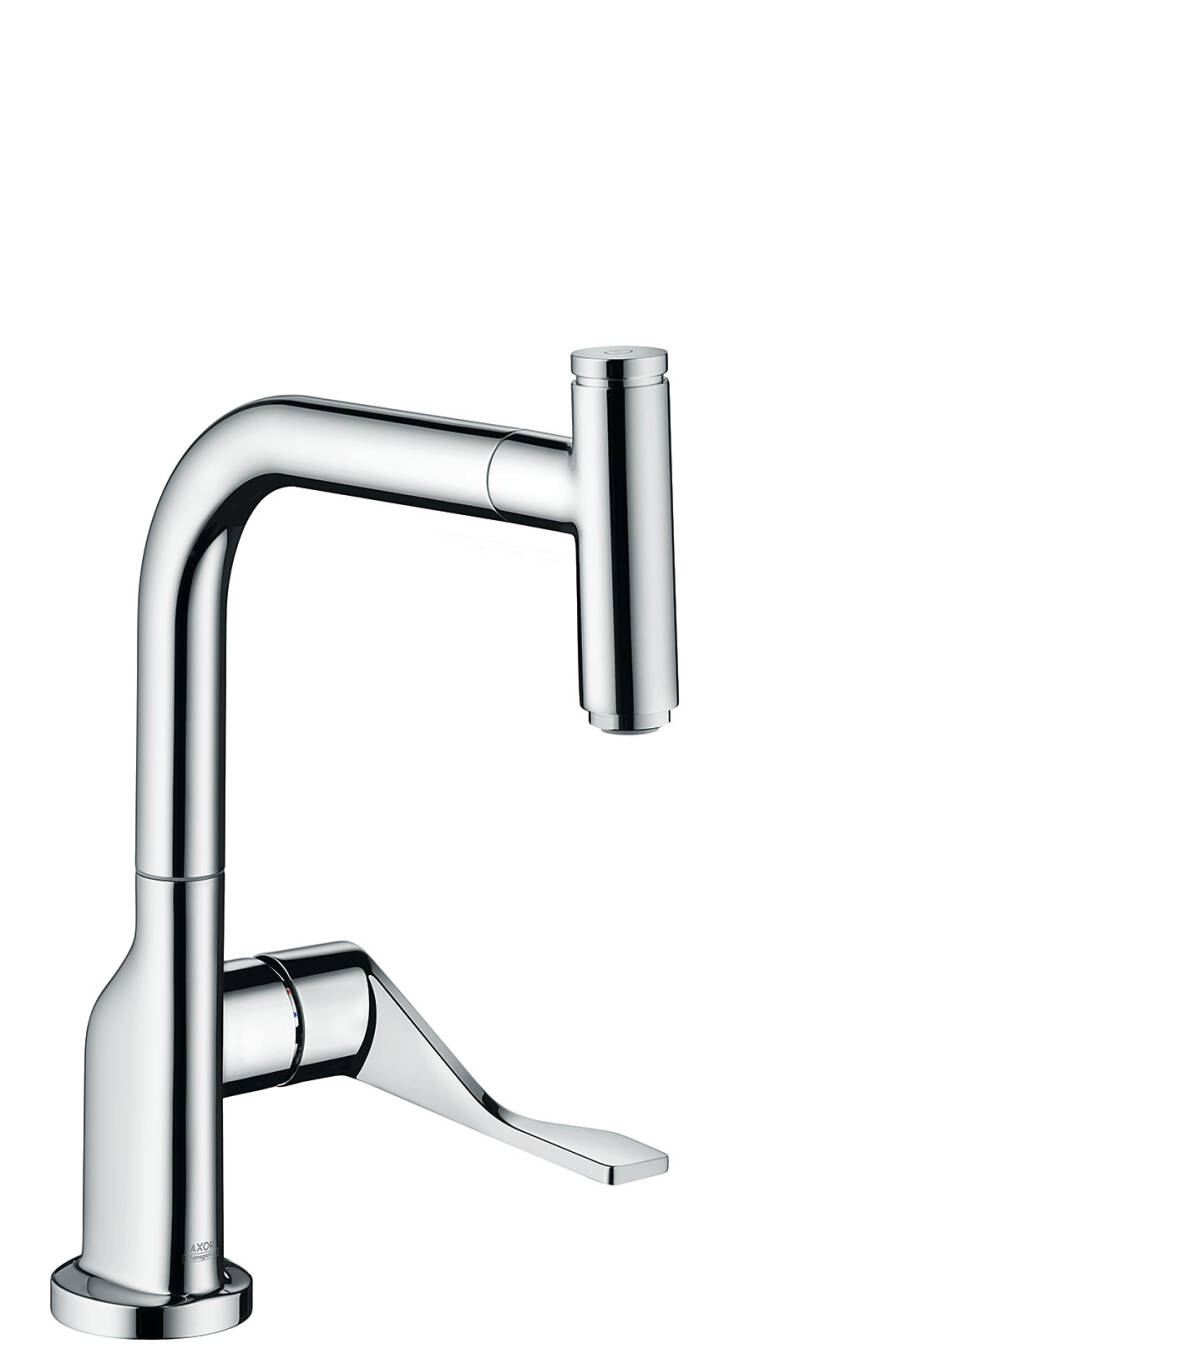 Single lever kitchen mixer Select 230 with pull-out spout, chrome, 39861000